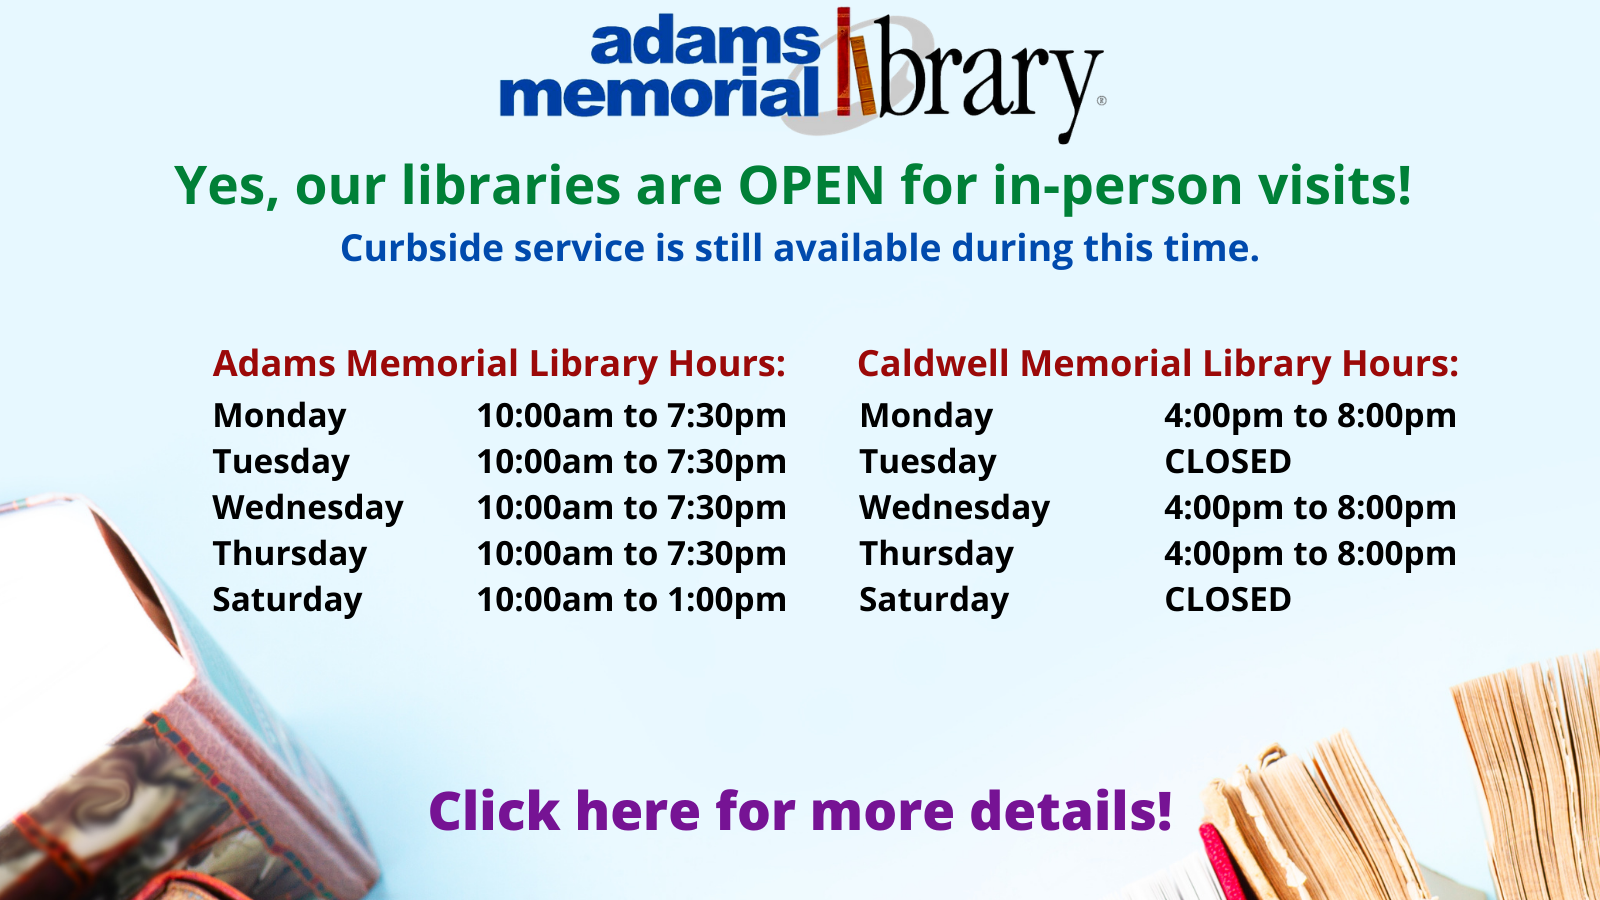 Our Libraries are OPEN